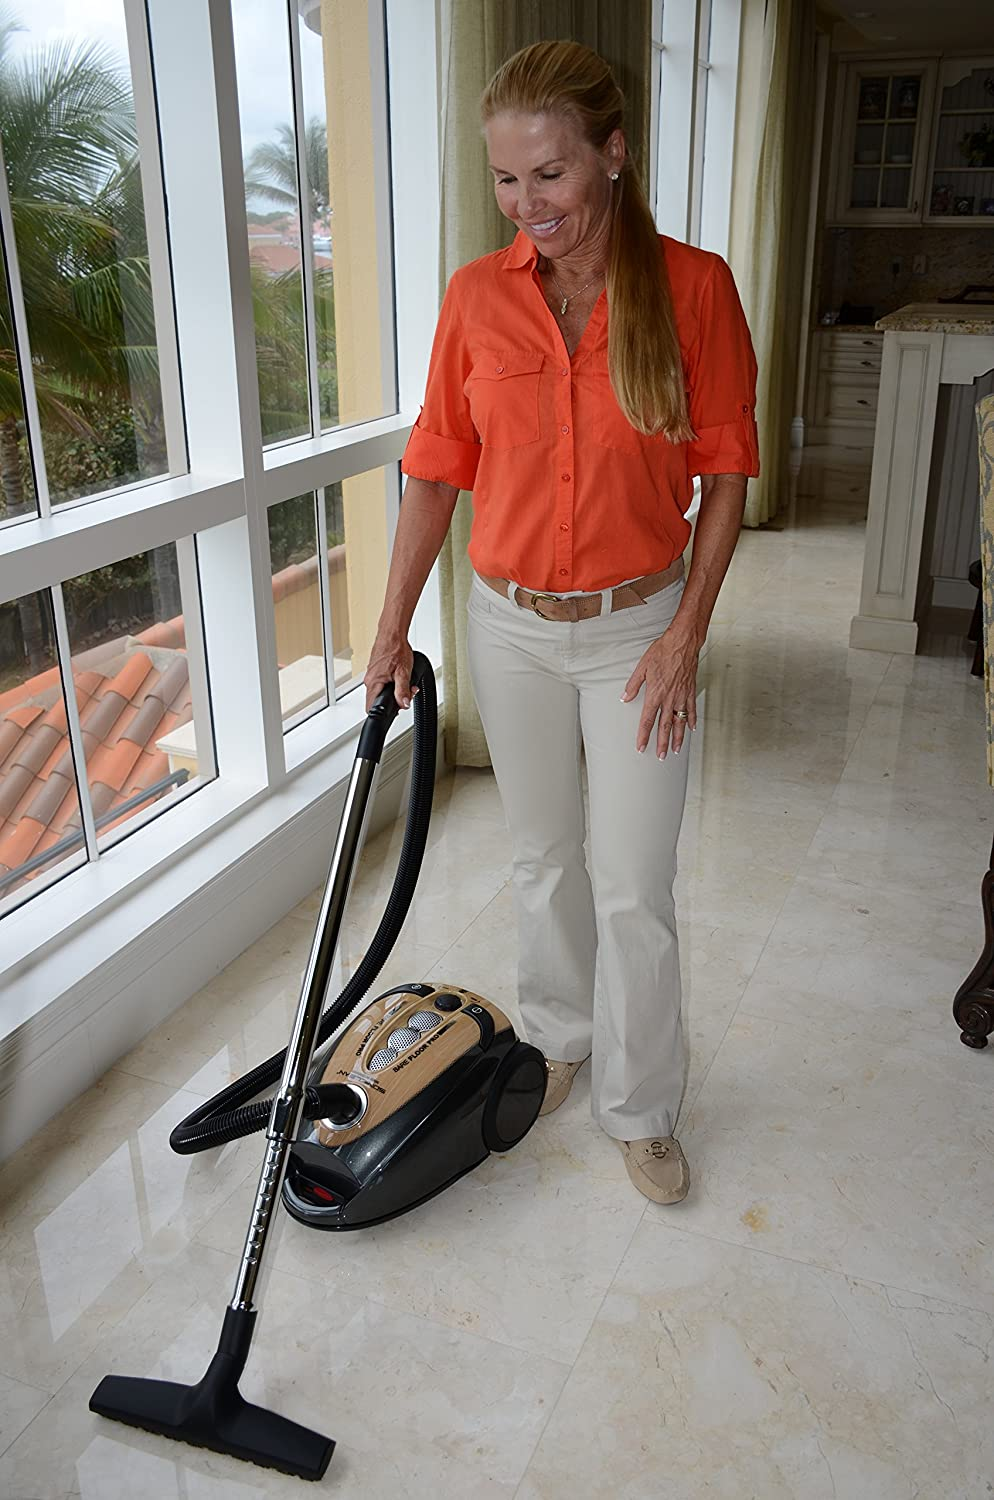 Comparison Chart Of The Best Vacuums For Wood Floors.